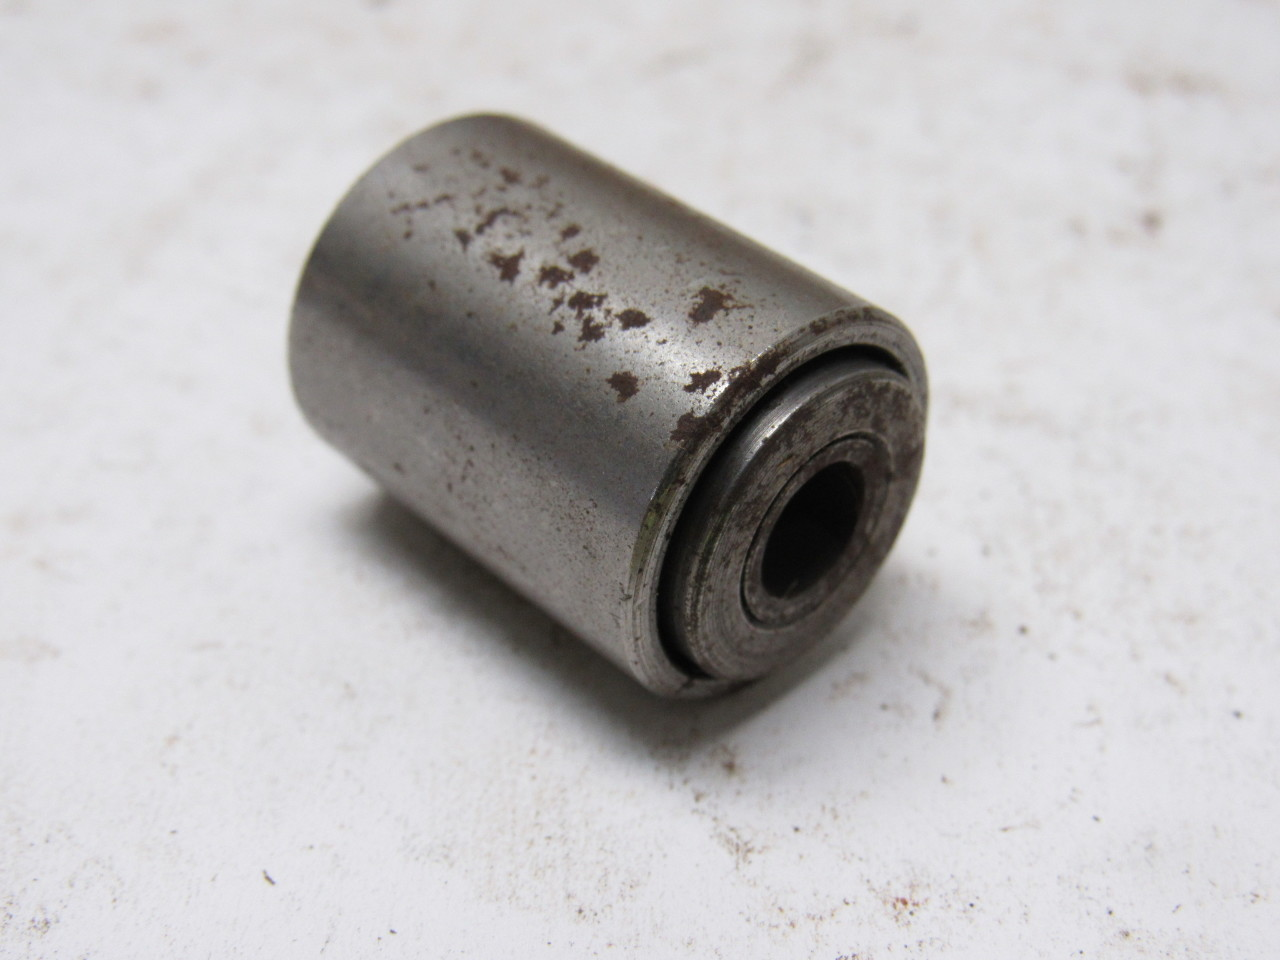 small part of metal - photo #33